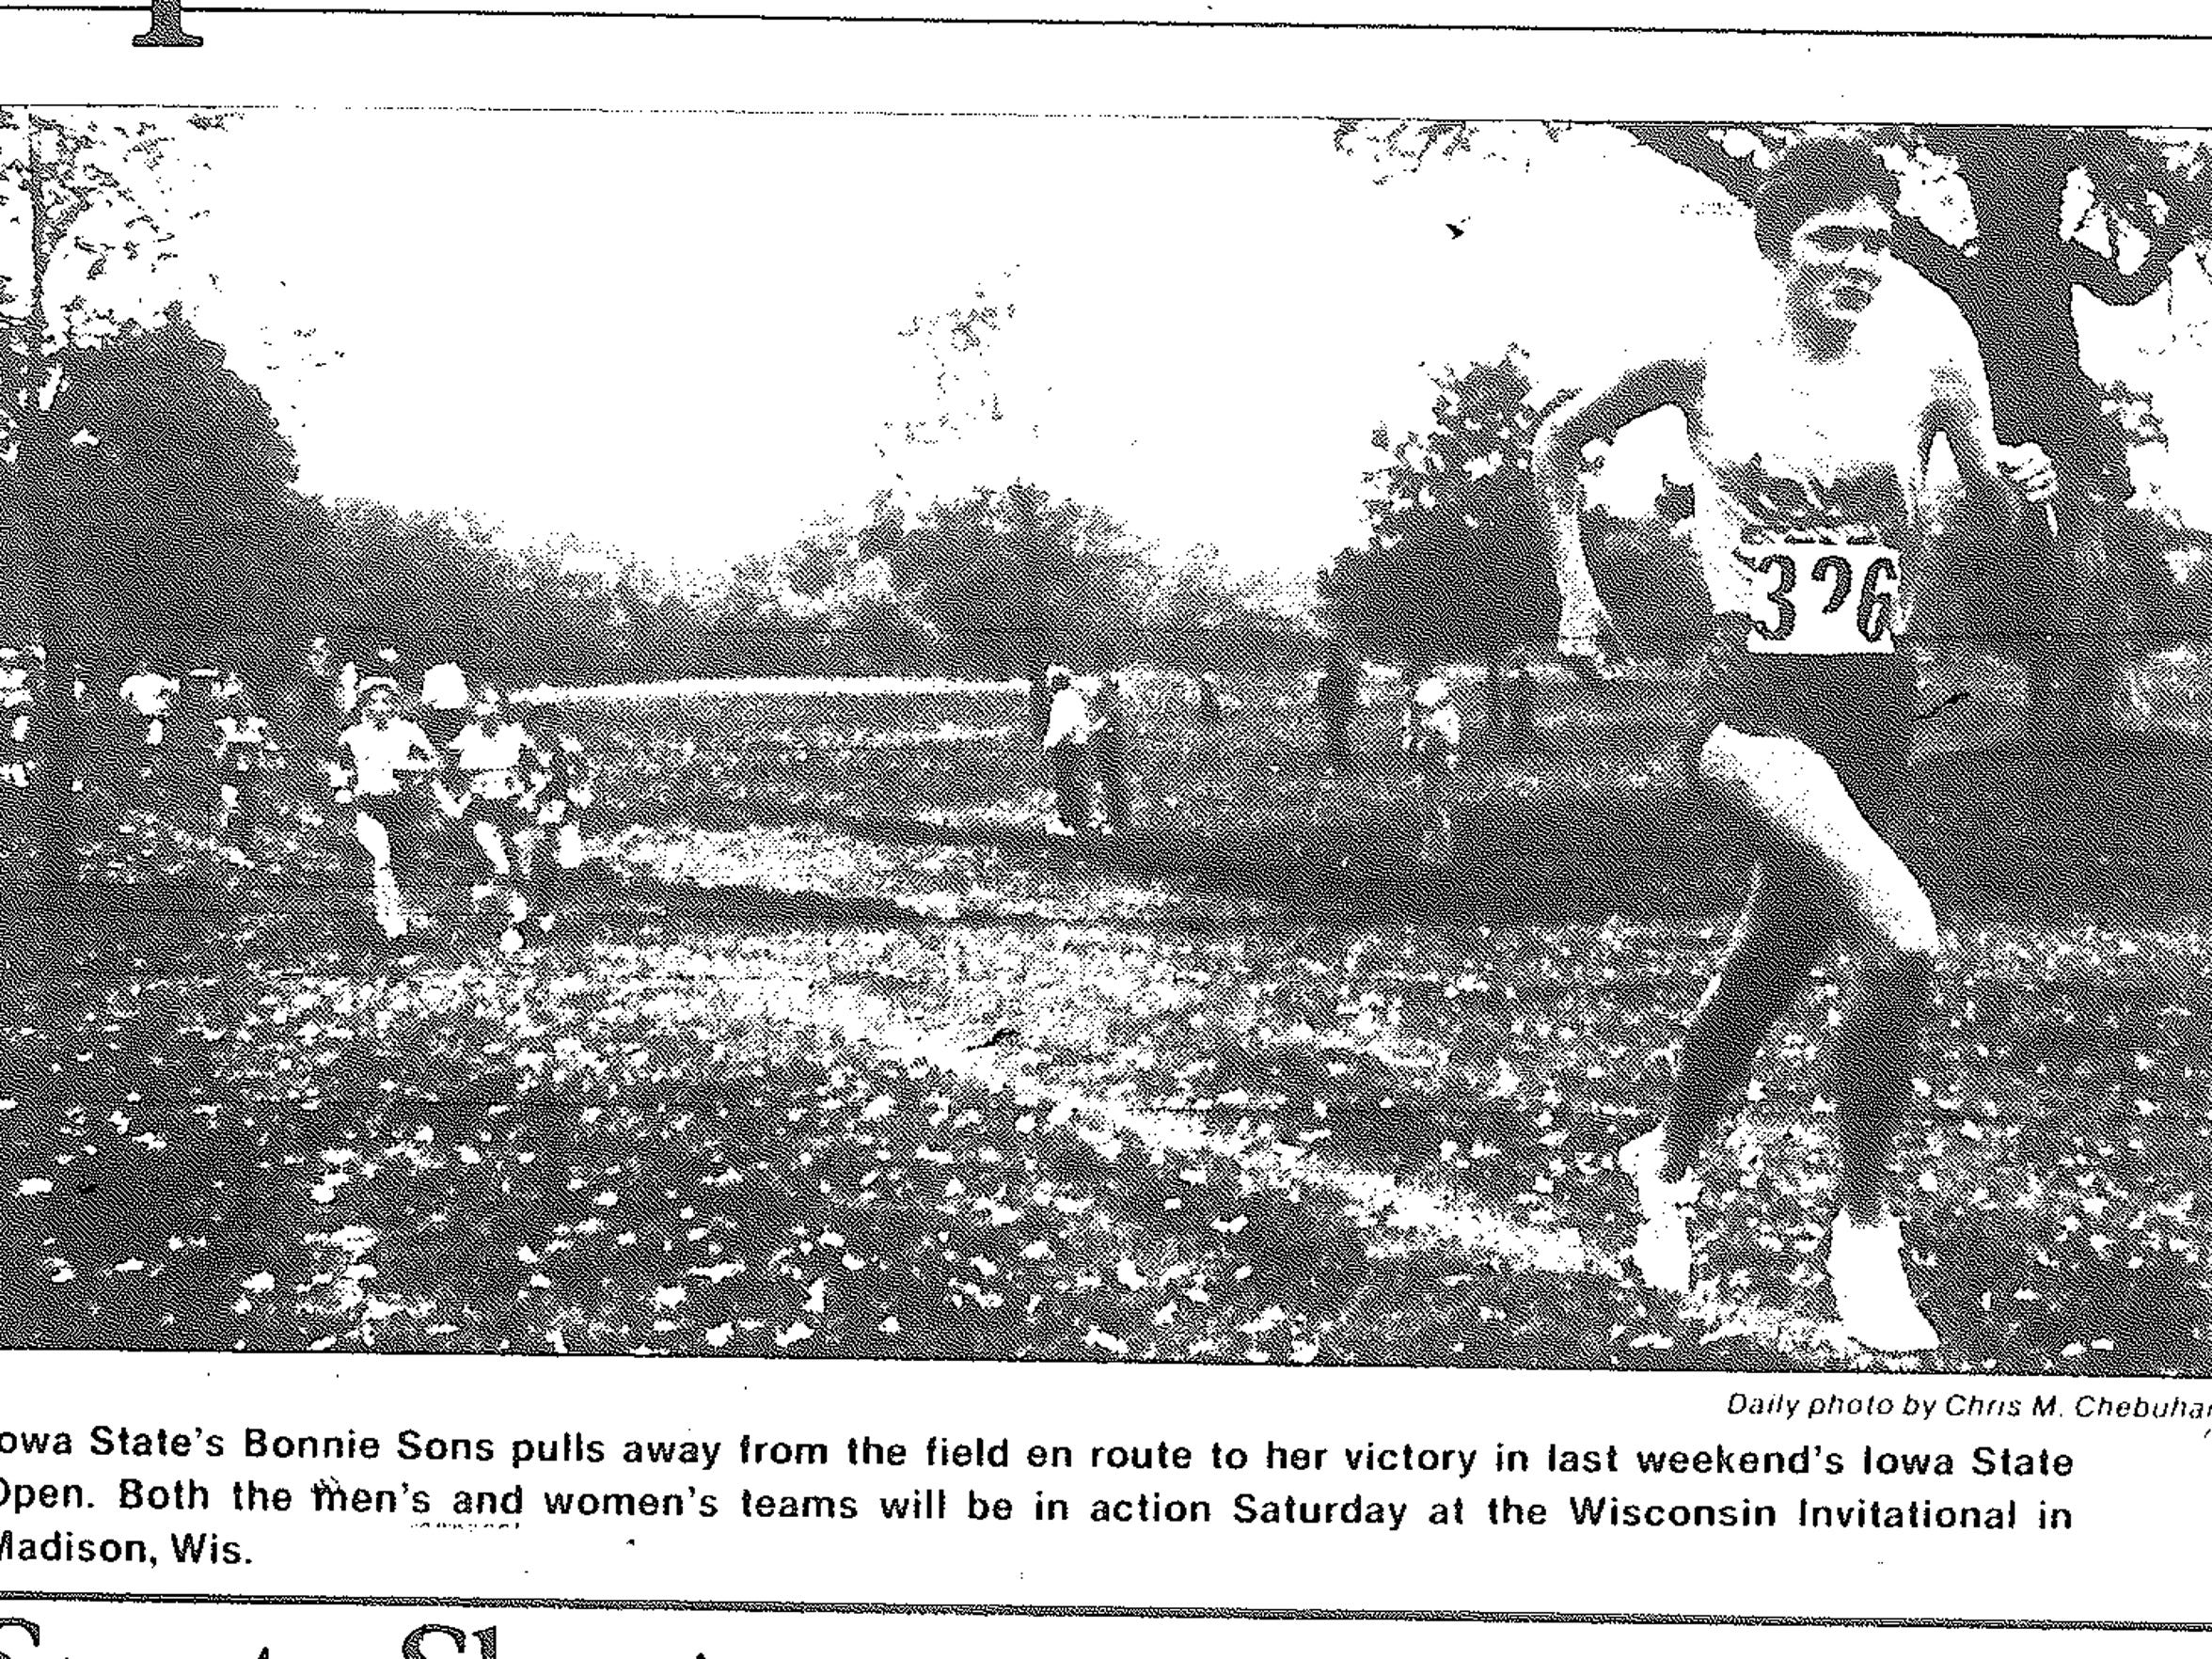 Clipping about Iowa State cross country runner Bonnie Sons from a 1985 edition of the Iowa State Daily.